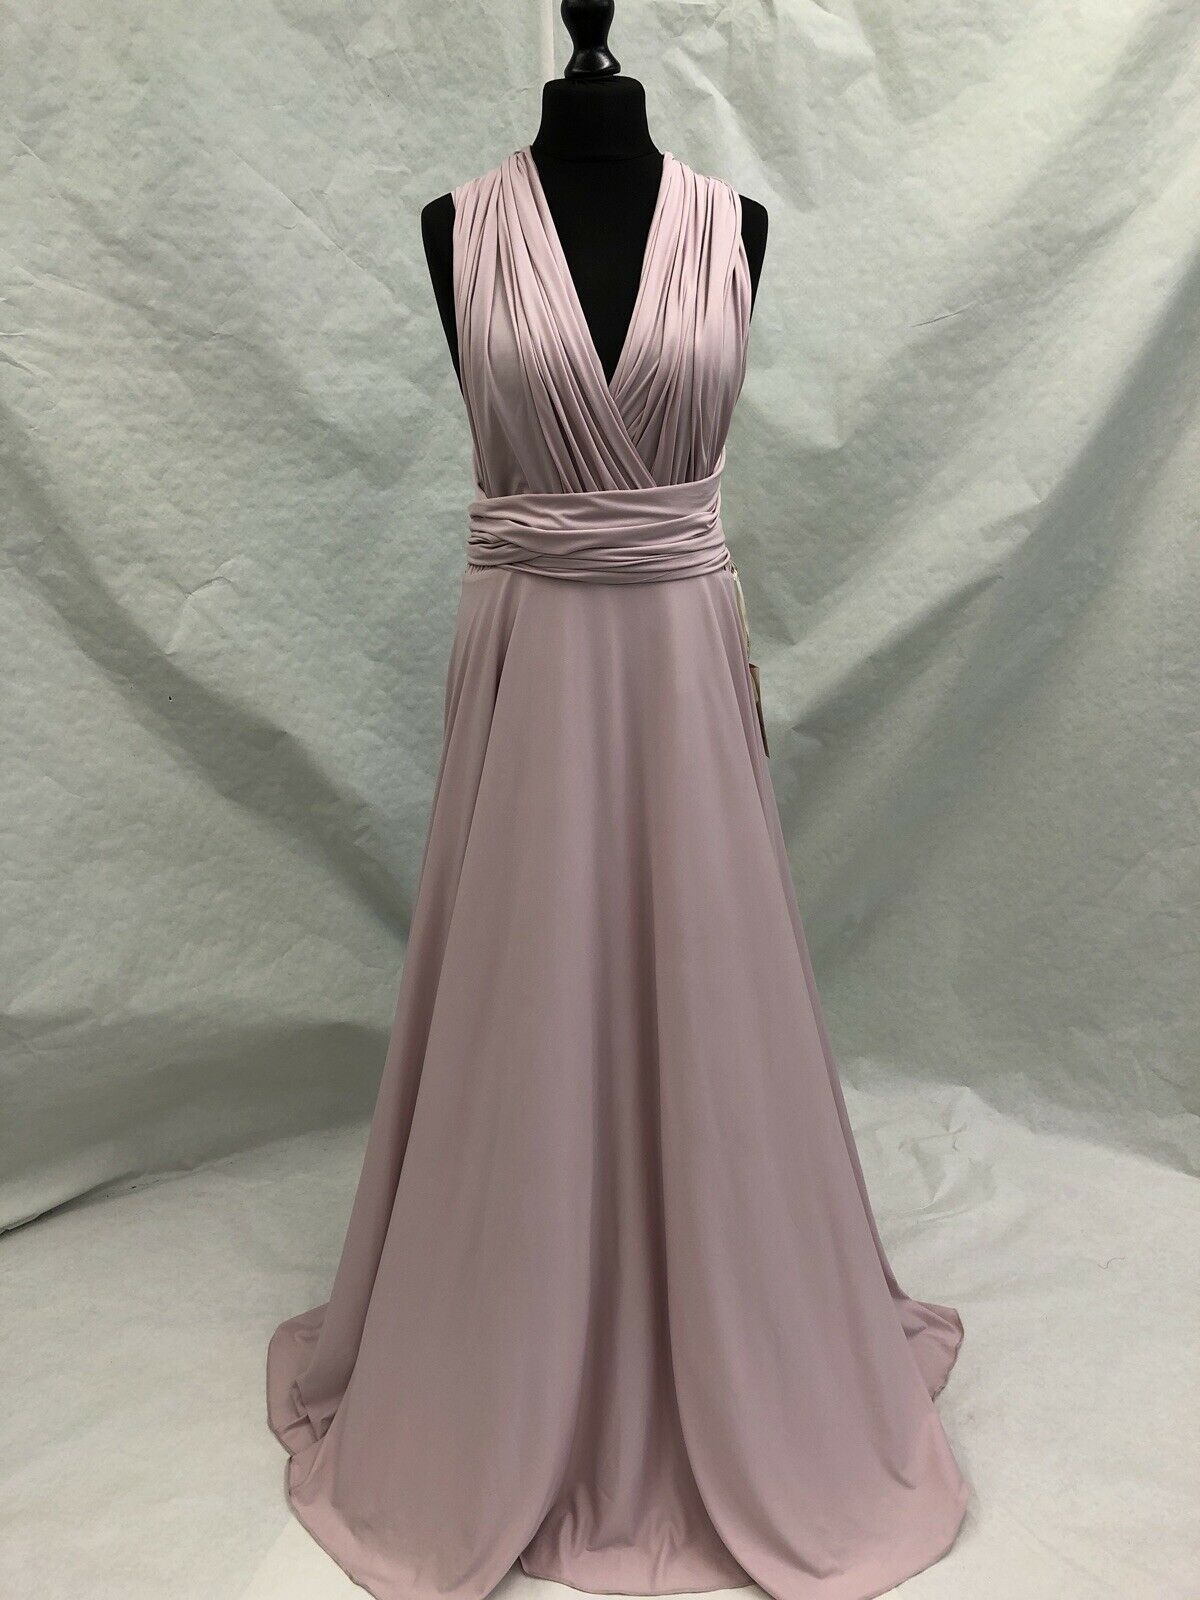 Multiway Dress Size 16 Pink BNWT PROM WEDDING BRIDESMAID RRP